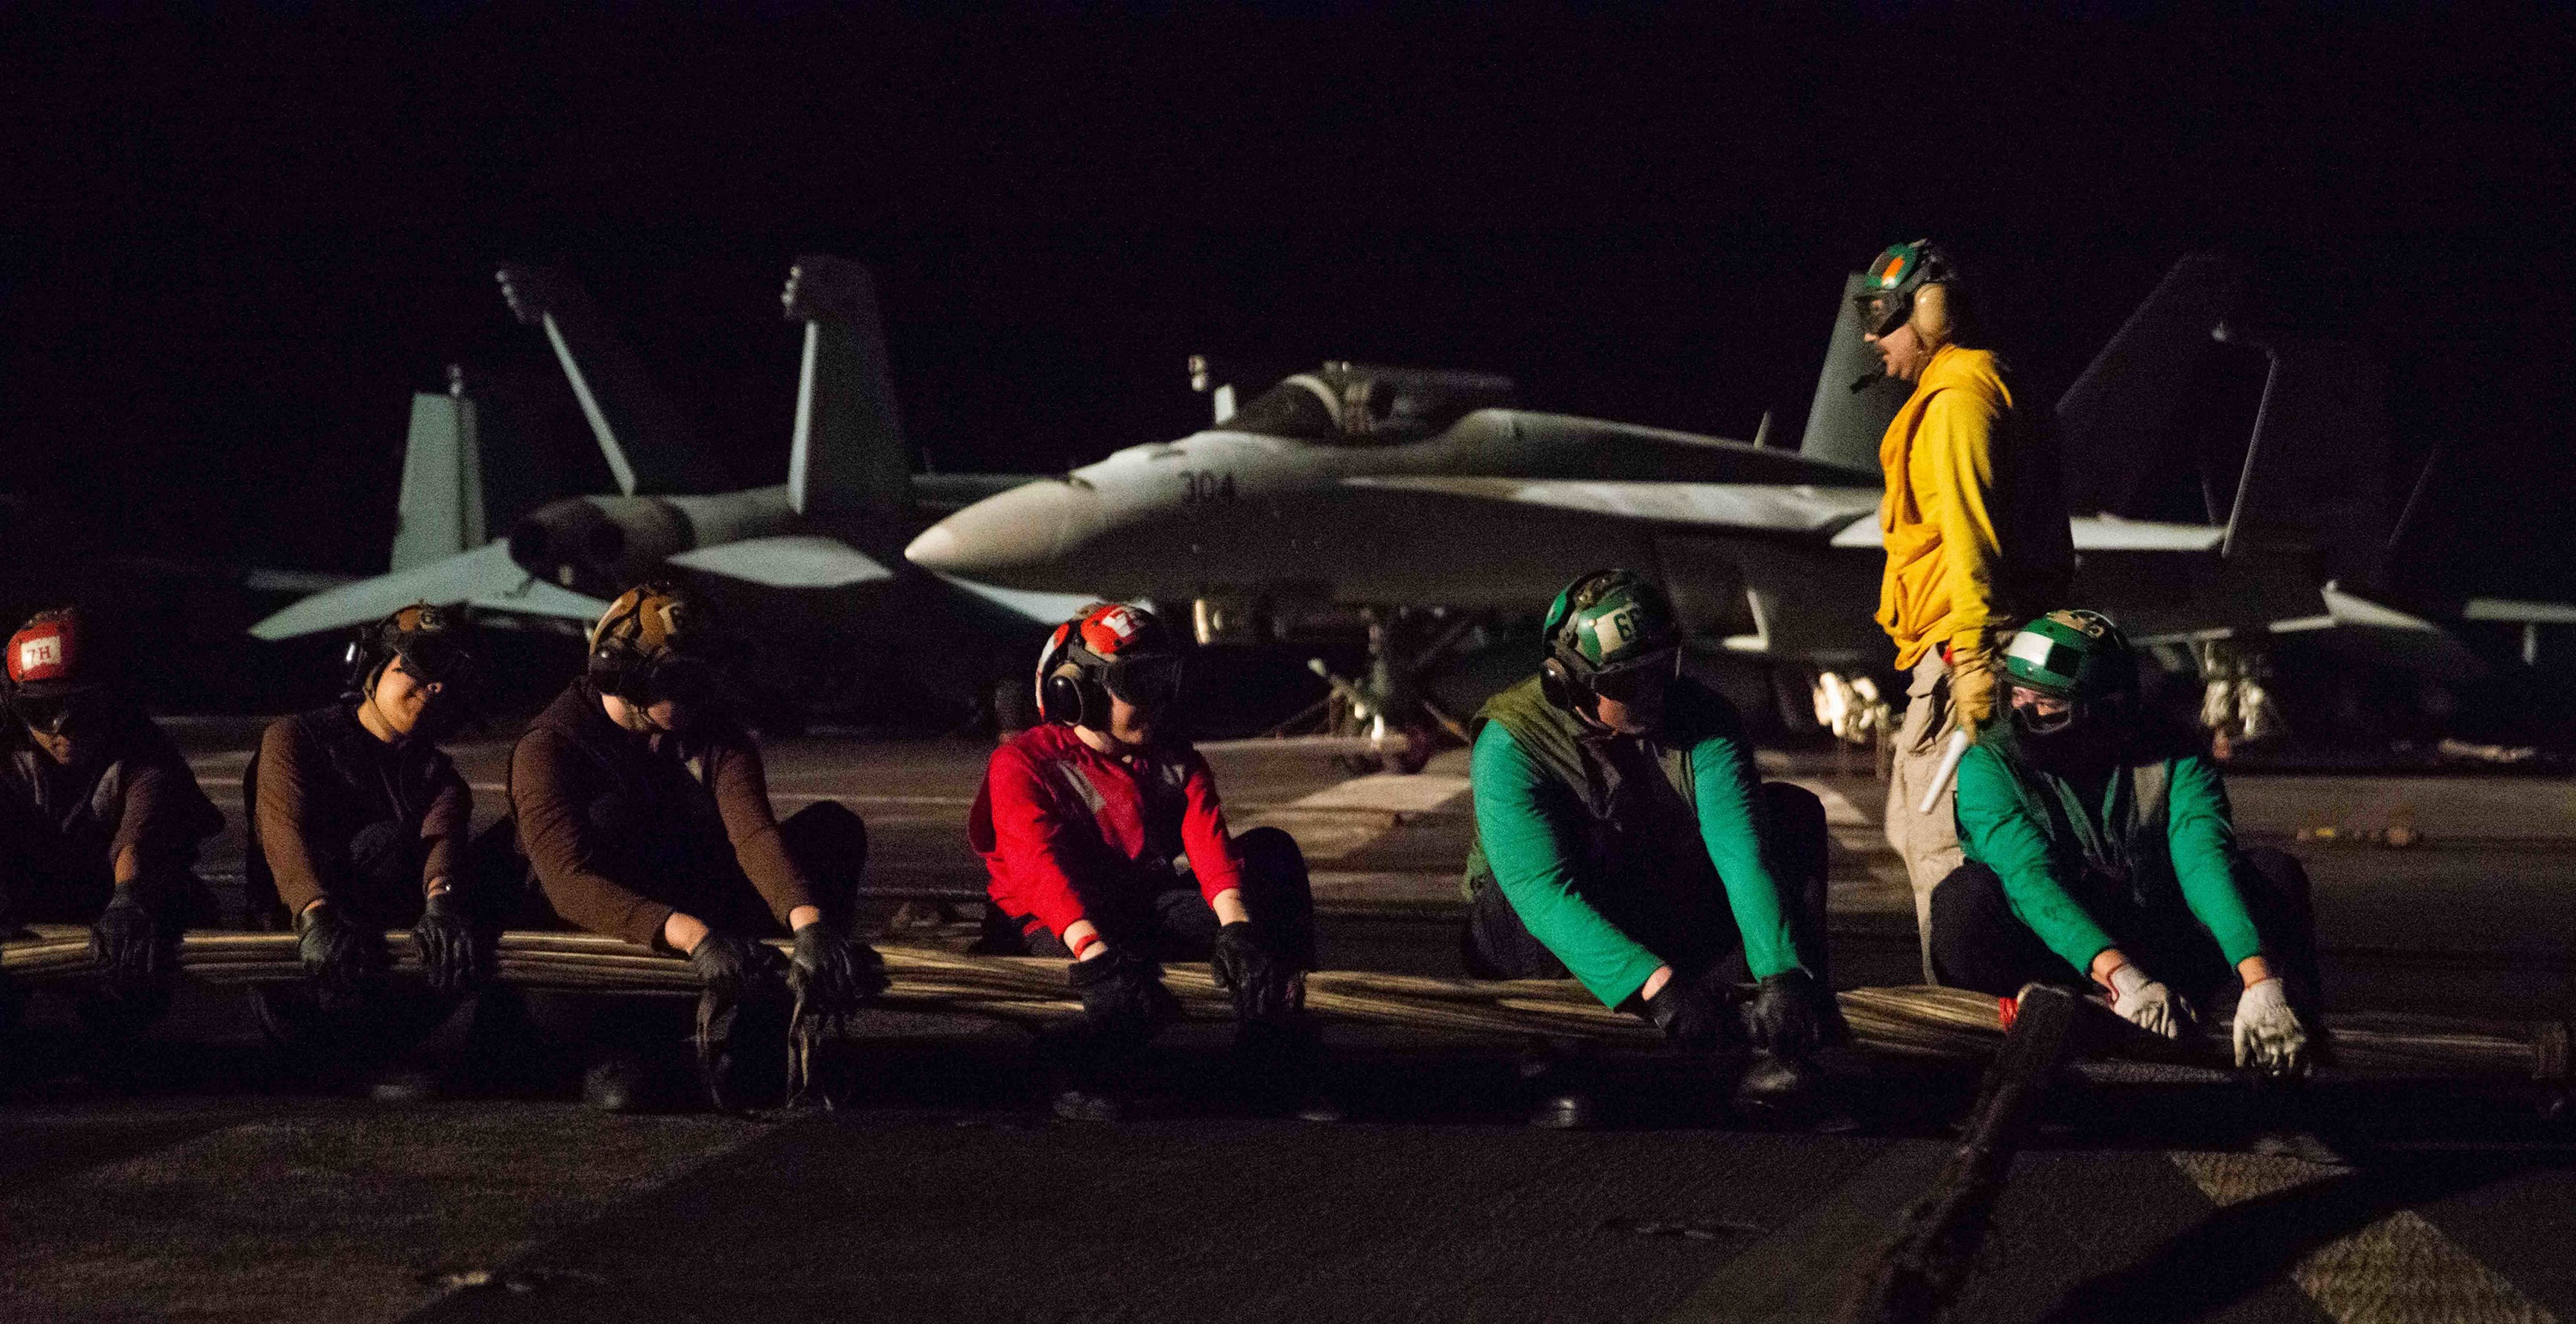 Sailors set up a barricade on the flight deck of the aircraft carrier Ronald Reagan during a damage control drill in the Gulf of Aden July 13. The Reagan is deployed to U.S. 5th Fleet to ensure maritime stability and security in the Central Command region. (MCSN Gray Gibson/Navy)